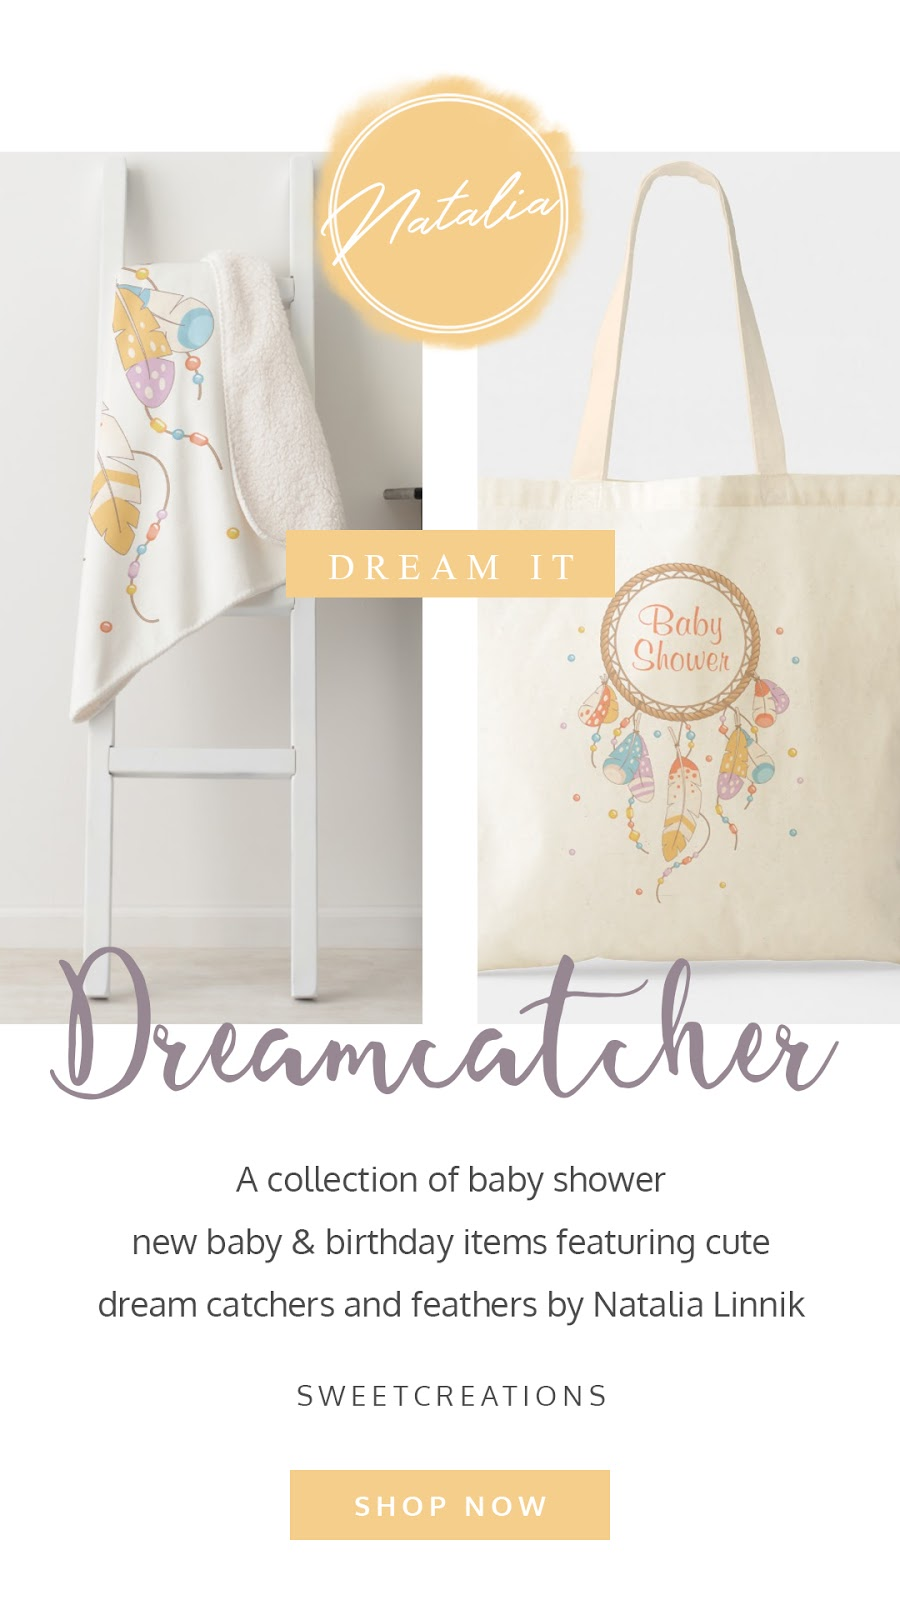 Boho chic dreamcatcher baby shower and birthday collection. Featuring custom tote bags, personalized baby blankets, gifts, and party favors. In a yellow, purple, orange, and blue color palette.